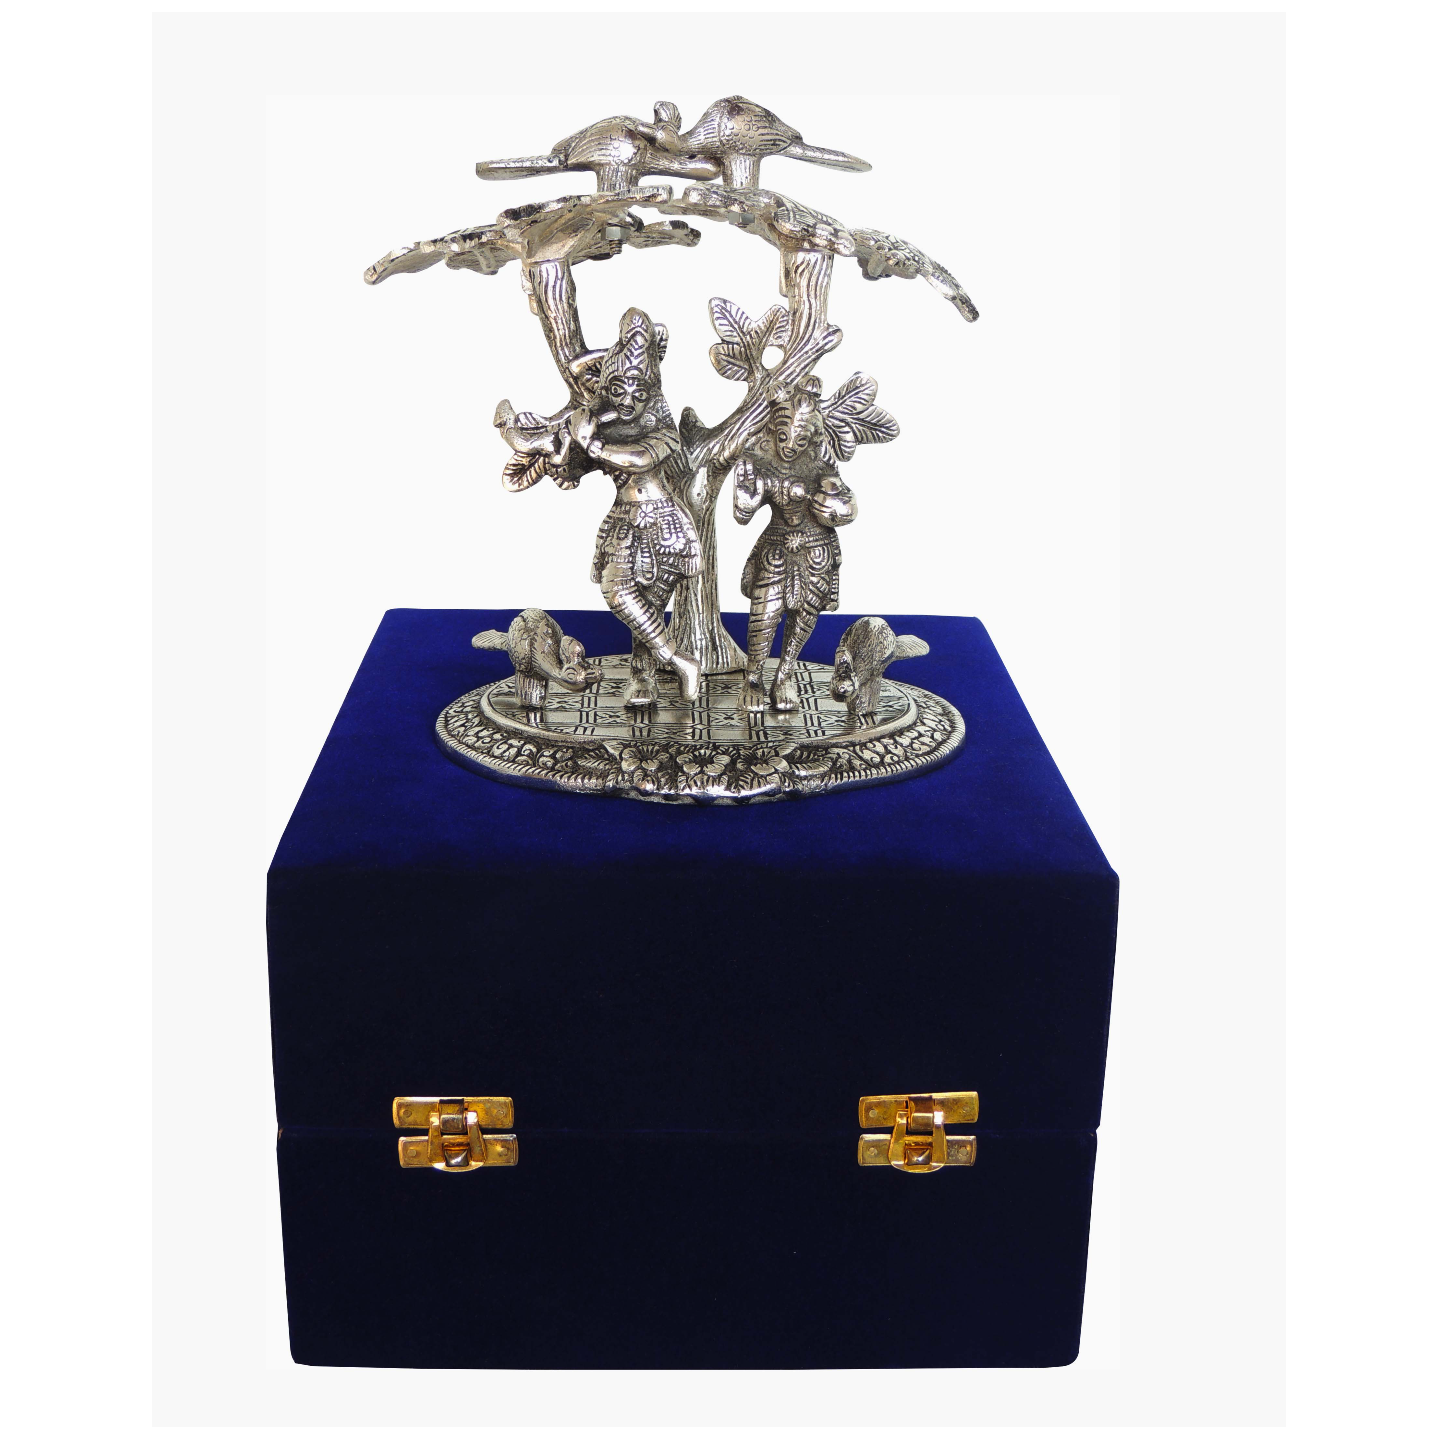 Aluminium Radha Krishna Standing Under Tree In Silver Antique Finish With Blue Velvet Box - 7.5*5.5*7.5 Inch (AS134 S)